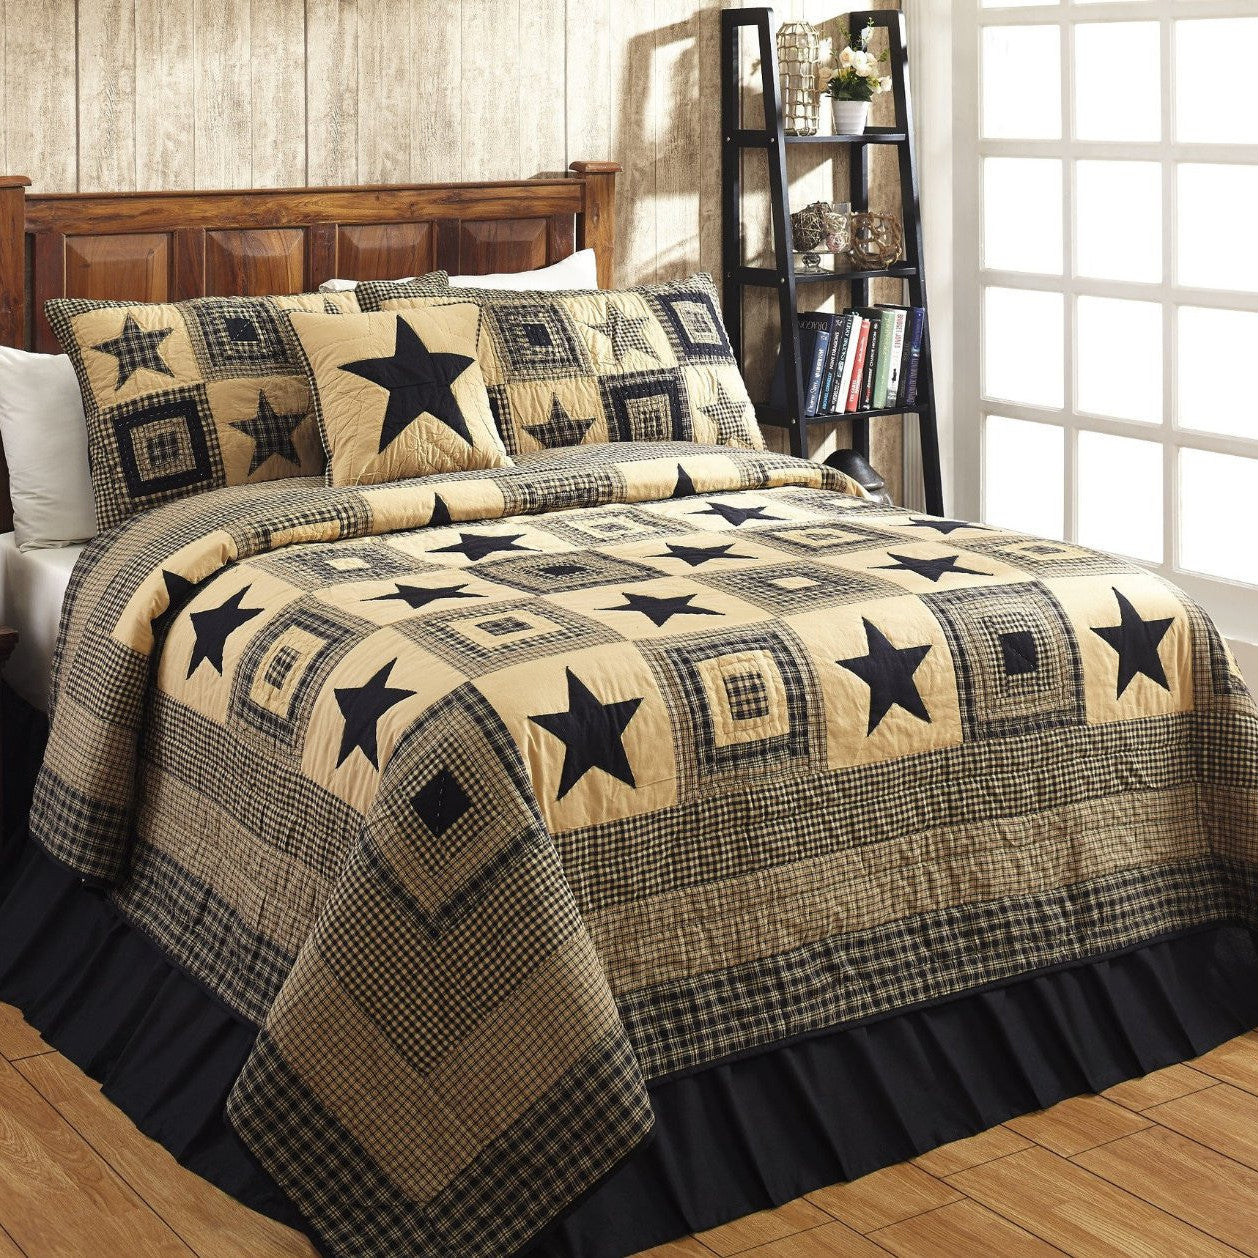 Colonial Star Black Tan Quilted Bedding Set 3pc Queen Dl